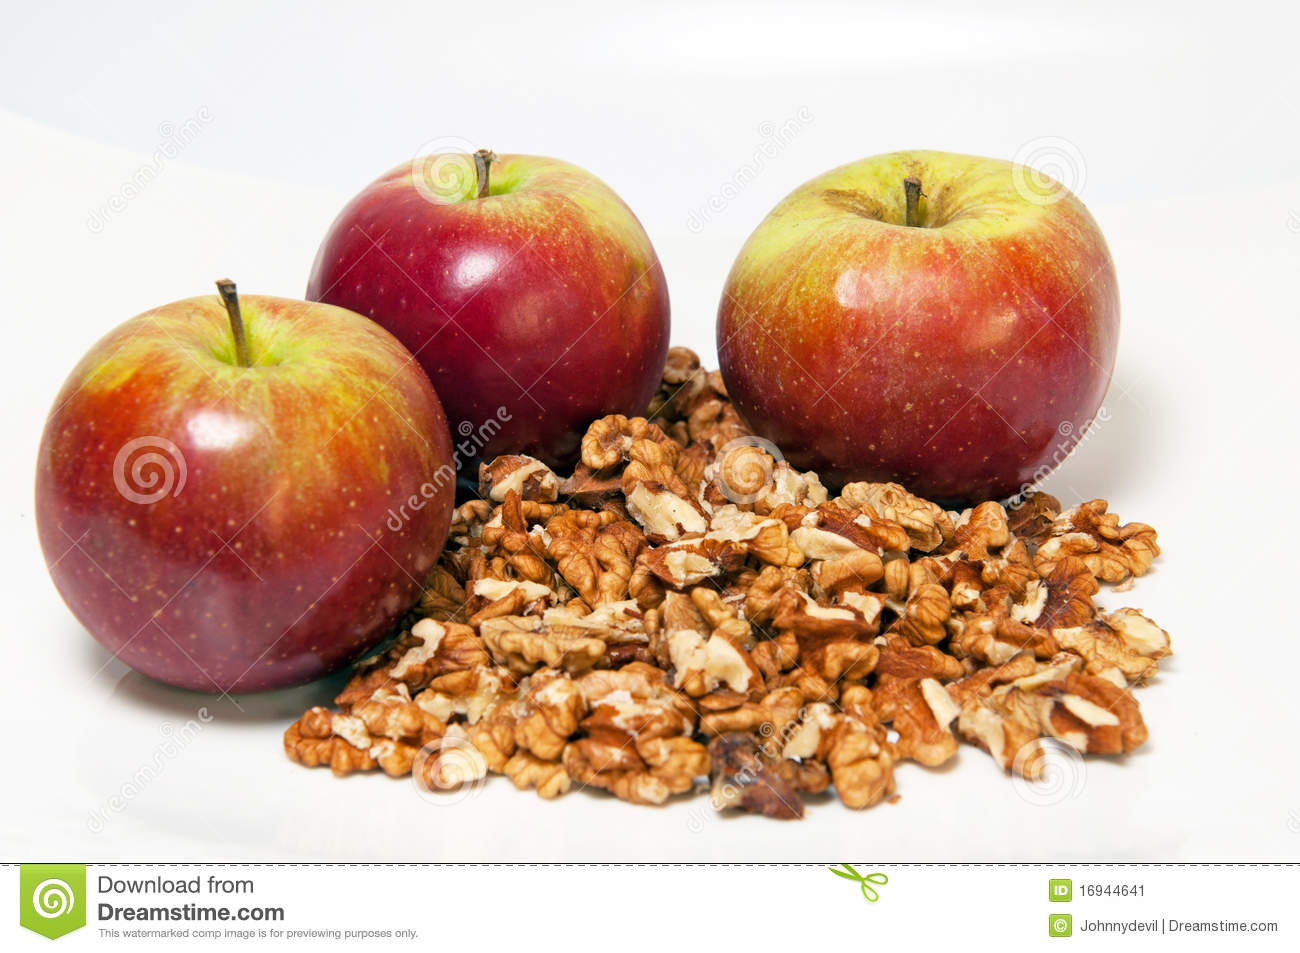 Apples And Walnuts Stock Image - Image: 16944641